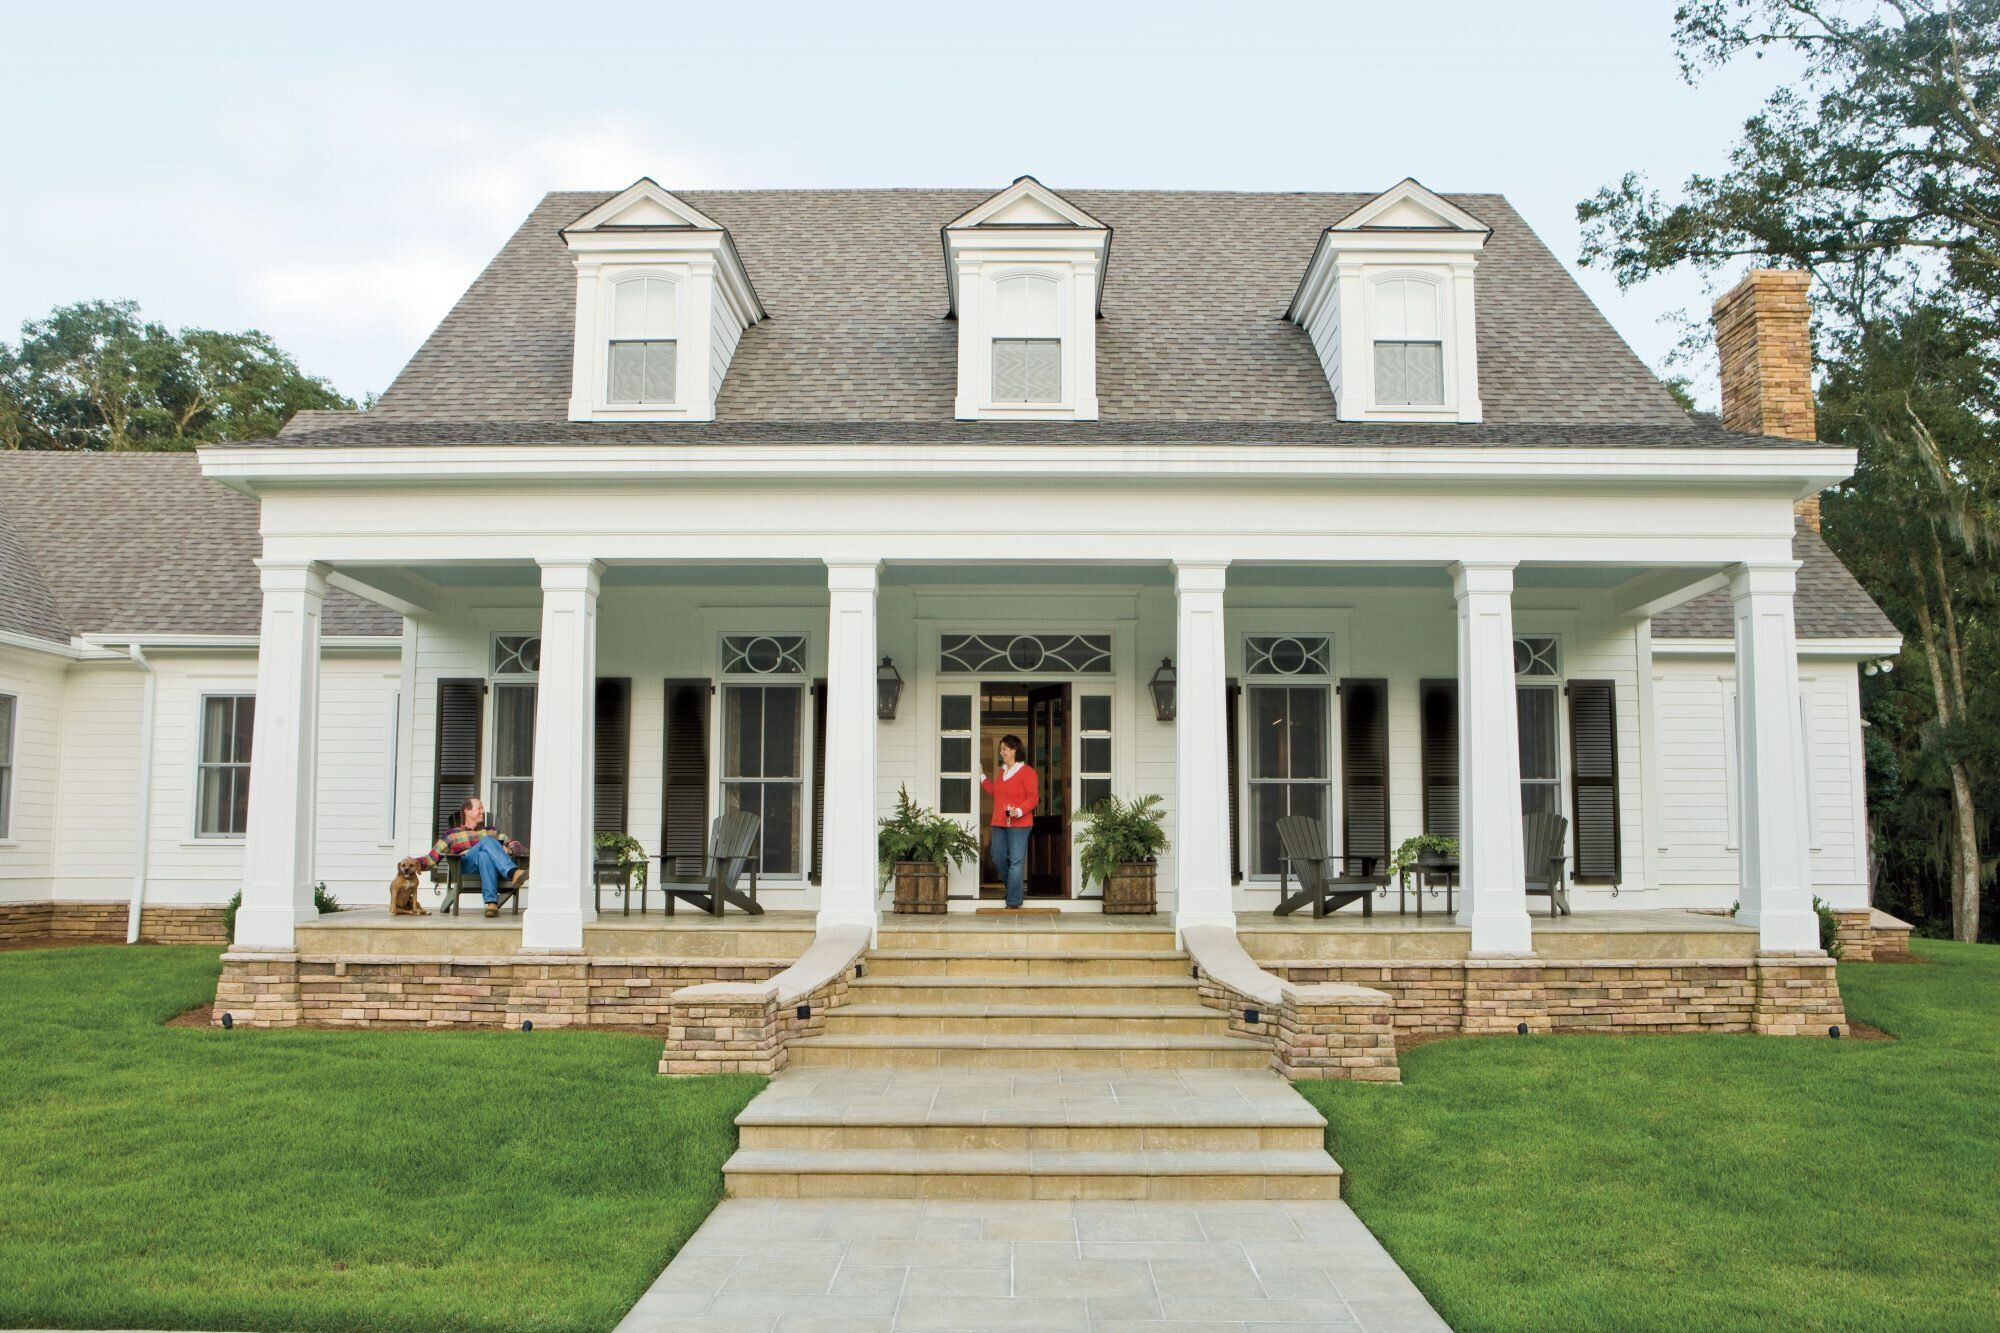 New House Timeless Character House With Porch Southern House Plans Farmhouse Style House